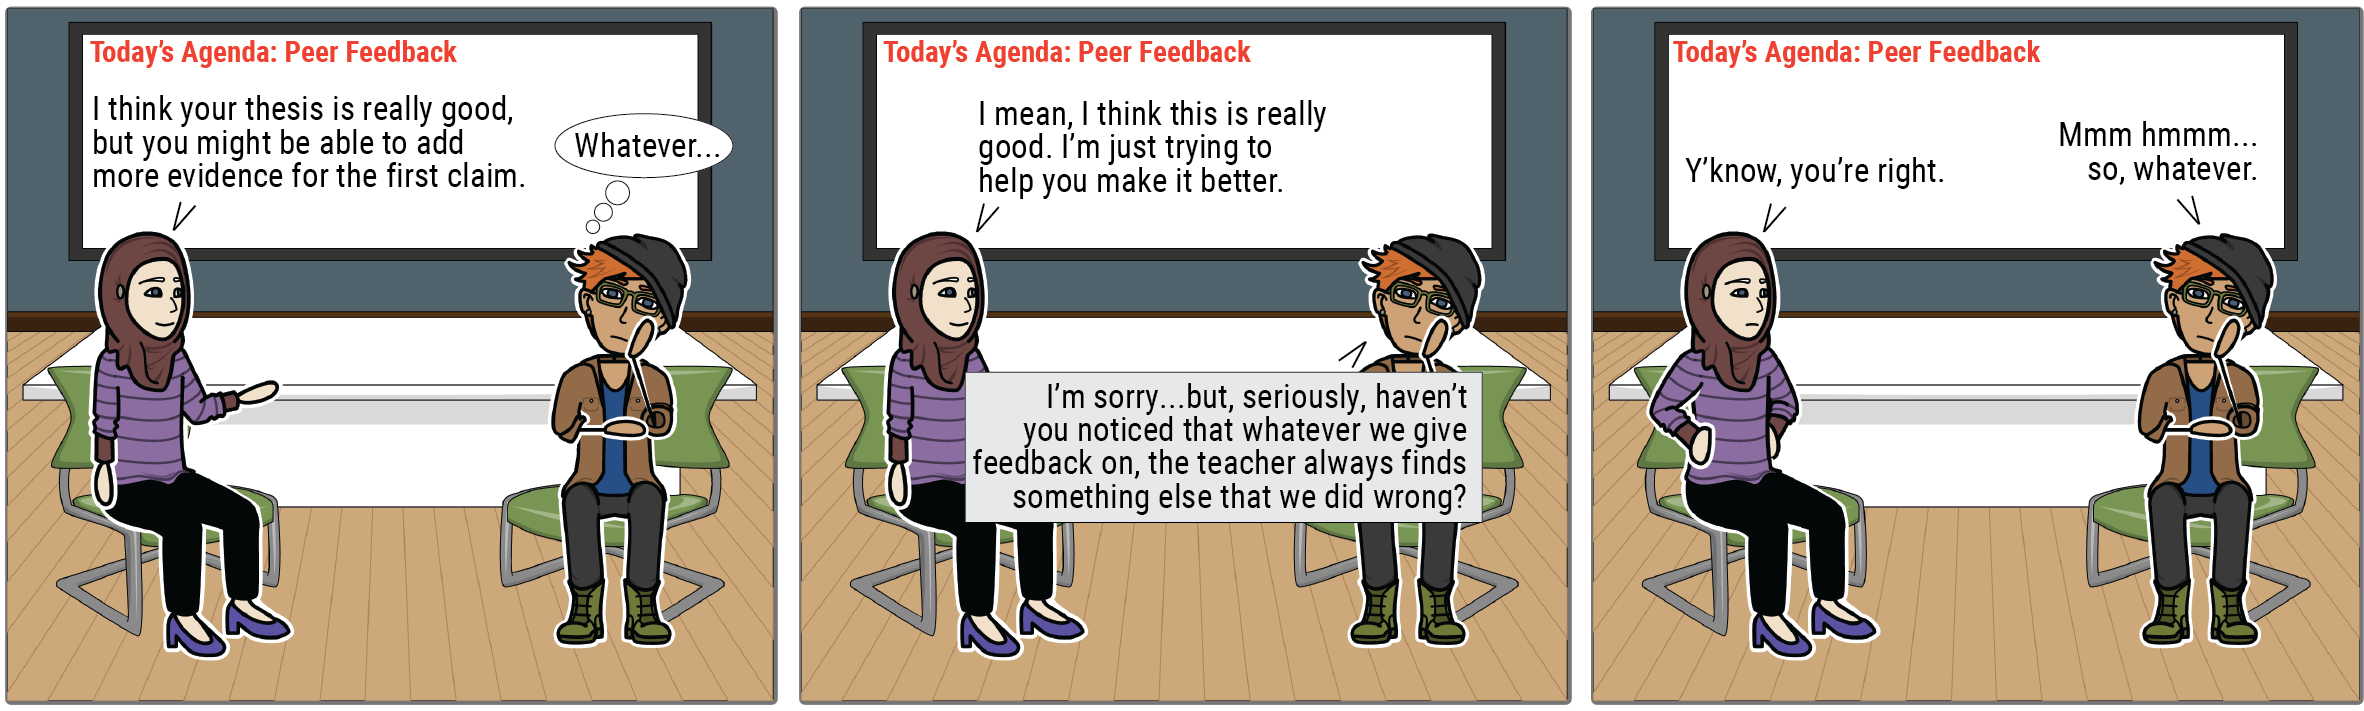 """A comic strip shows two students giving peer feedback. Student 1: """"I think your thesis is really good, but you might be able to add more evidence for the first claim."""" Student 2 thinks, """"Whatever..."""" Student 1: """"I mean, this is really good, I'm just trying to help you make it better."""" Student 2: """"I'm sorry ... but seriously, haven't you noticed that whatever we give feedback on, the teacher always finds something else that we did wrong?"""" Student 1: """"Y'know, you're right."""" Student 2: """"Mmmhmm, so, whatever."""""""